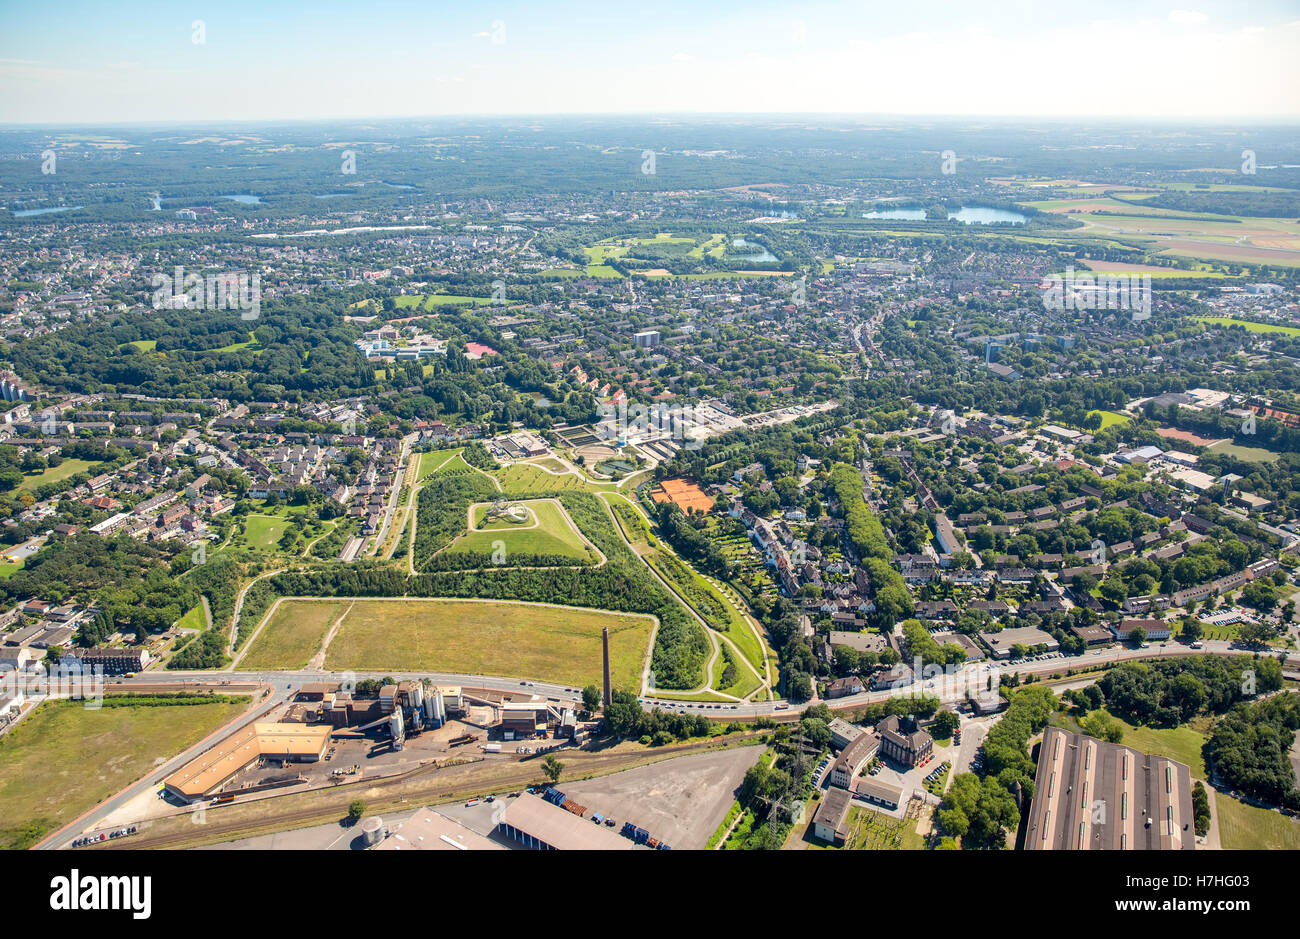 Aerial view, Duisburg-Hüttenheim officials colony Schulz-Knaudt street, historic mining town, colliery houses, - Stock Image